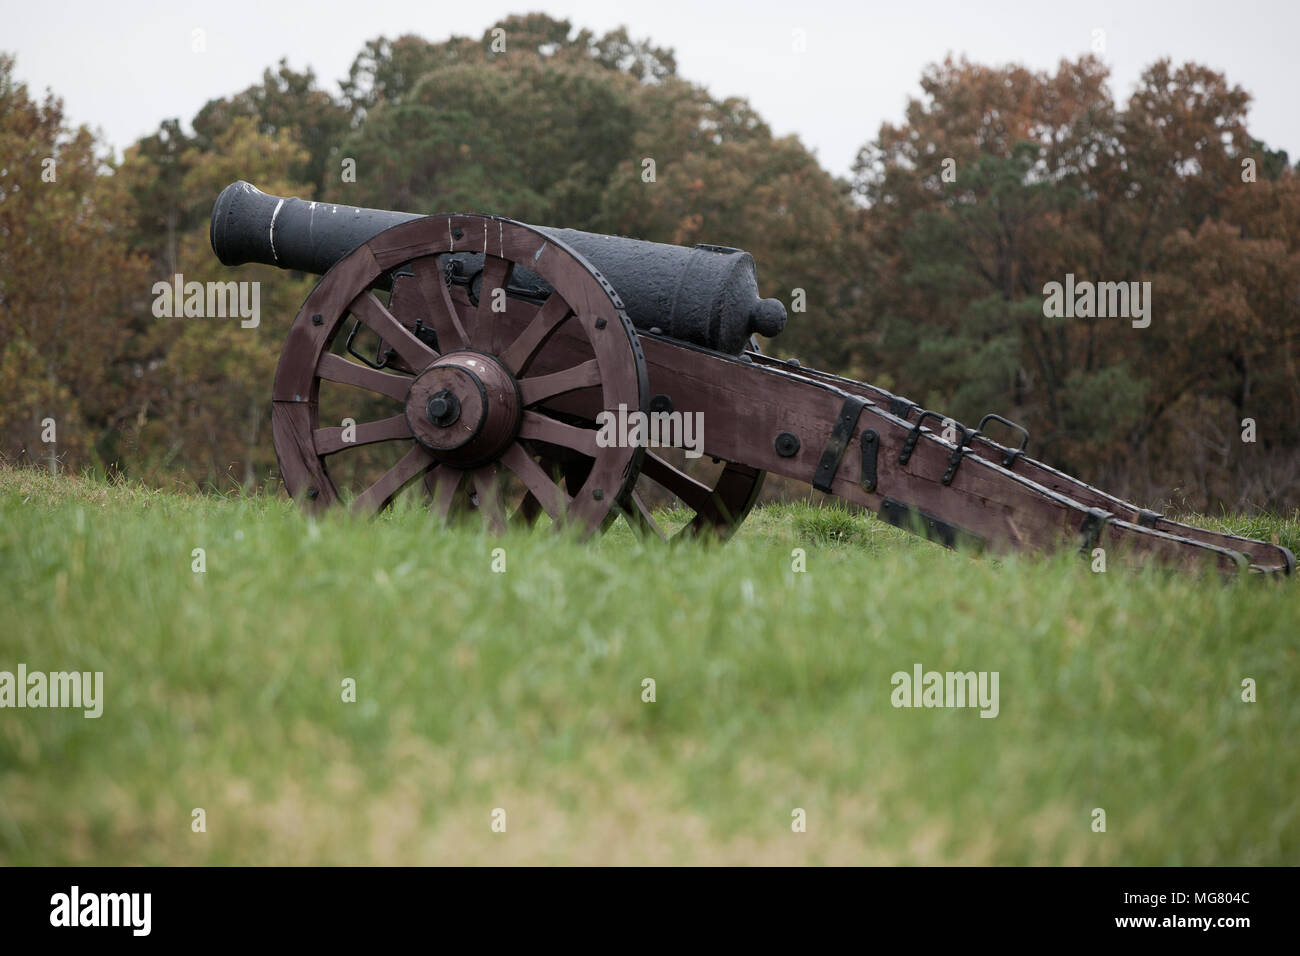 Revolutionary war cannon displayed on the field of the historic battle of Yorktown during the American revolutionary war - Stock Image